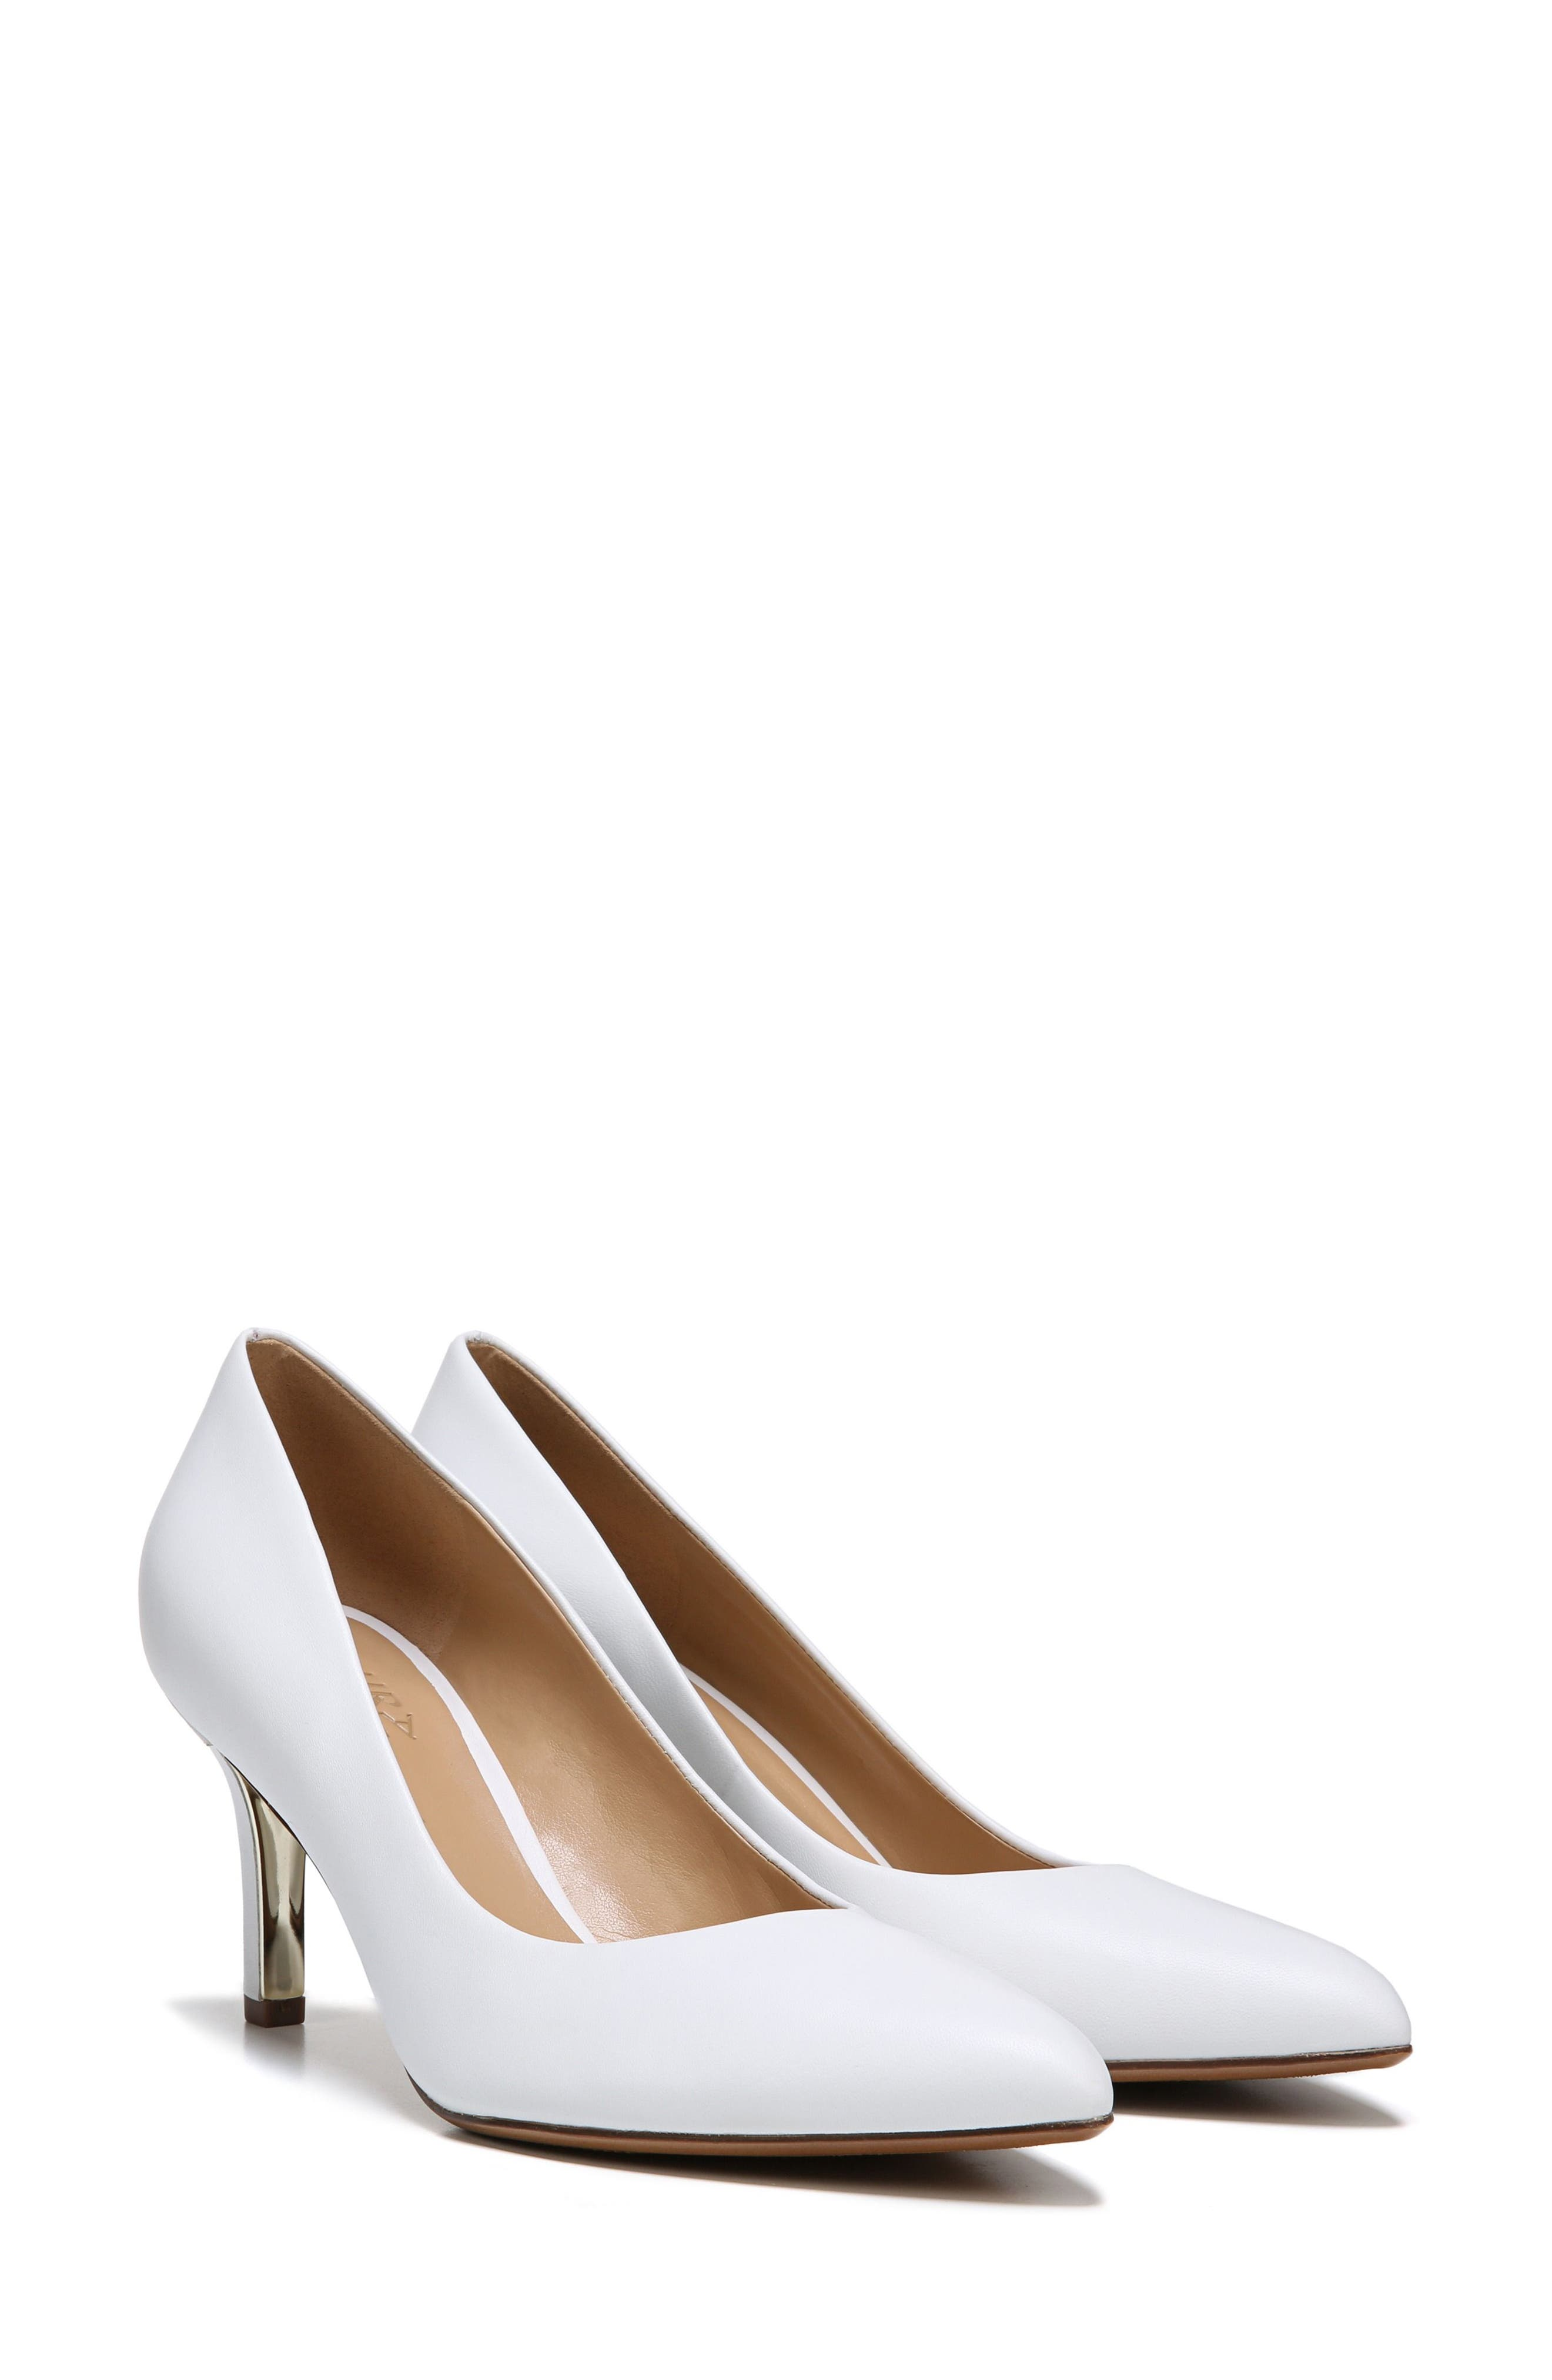 Natalie Pointy Toe Pump,                             Alternate thumbnail 8, color,                             WHITE LEATHER